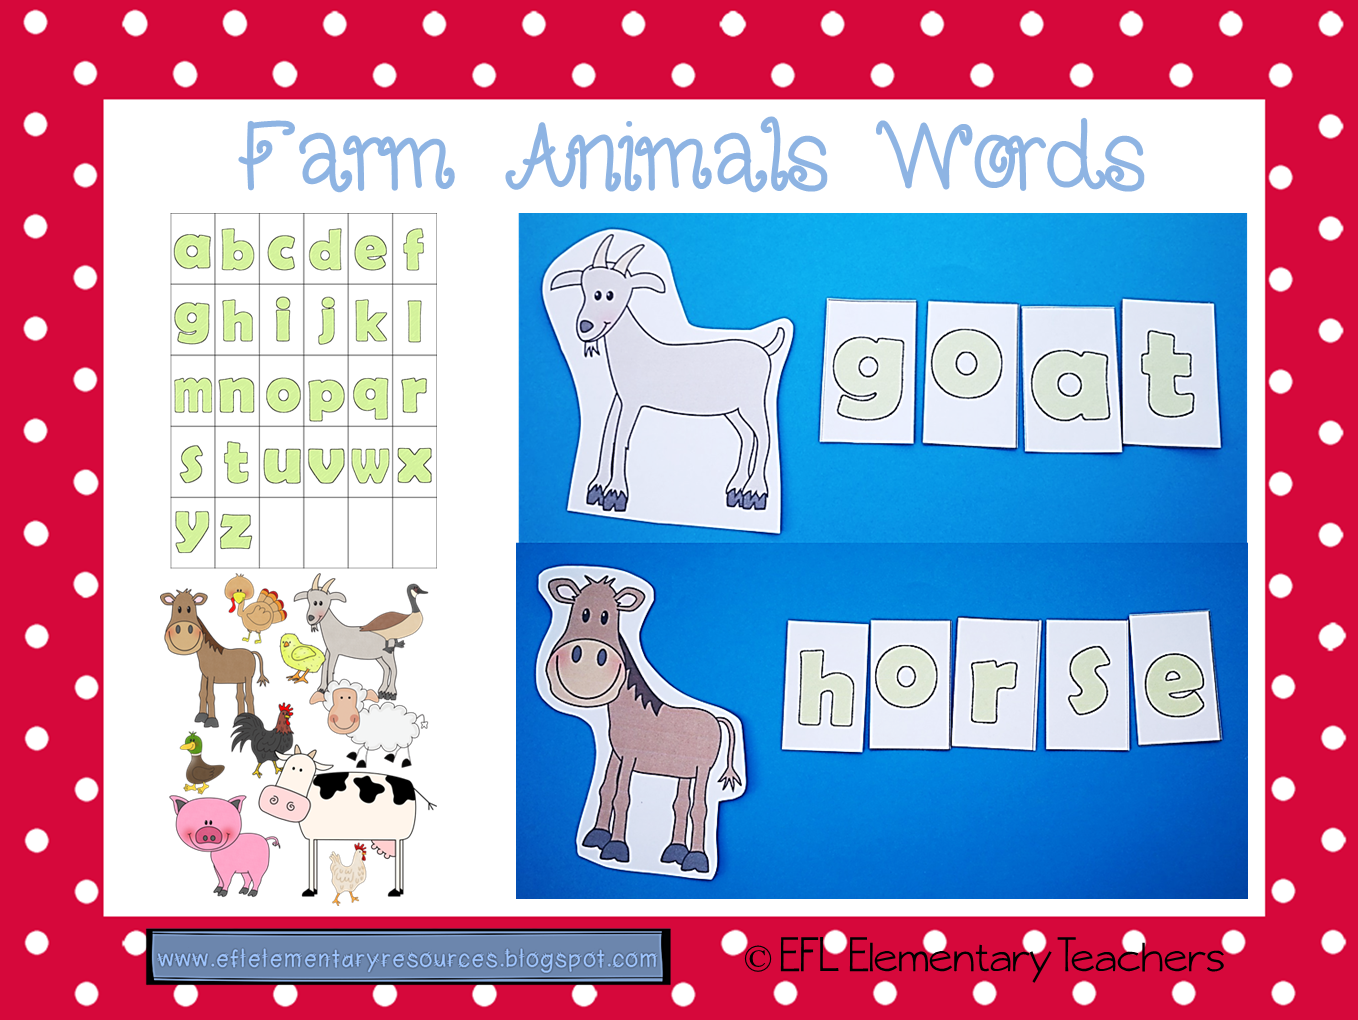 First Farm Words Efl Elementary Teachers Unit Activities For Esl Have The Students Write Animals Using Printable Green Letters And Cutouts Or Dictate Student Group To Finish